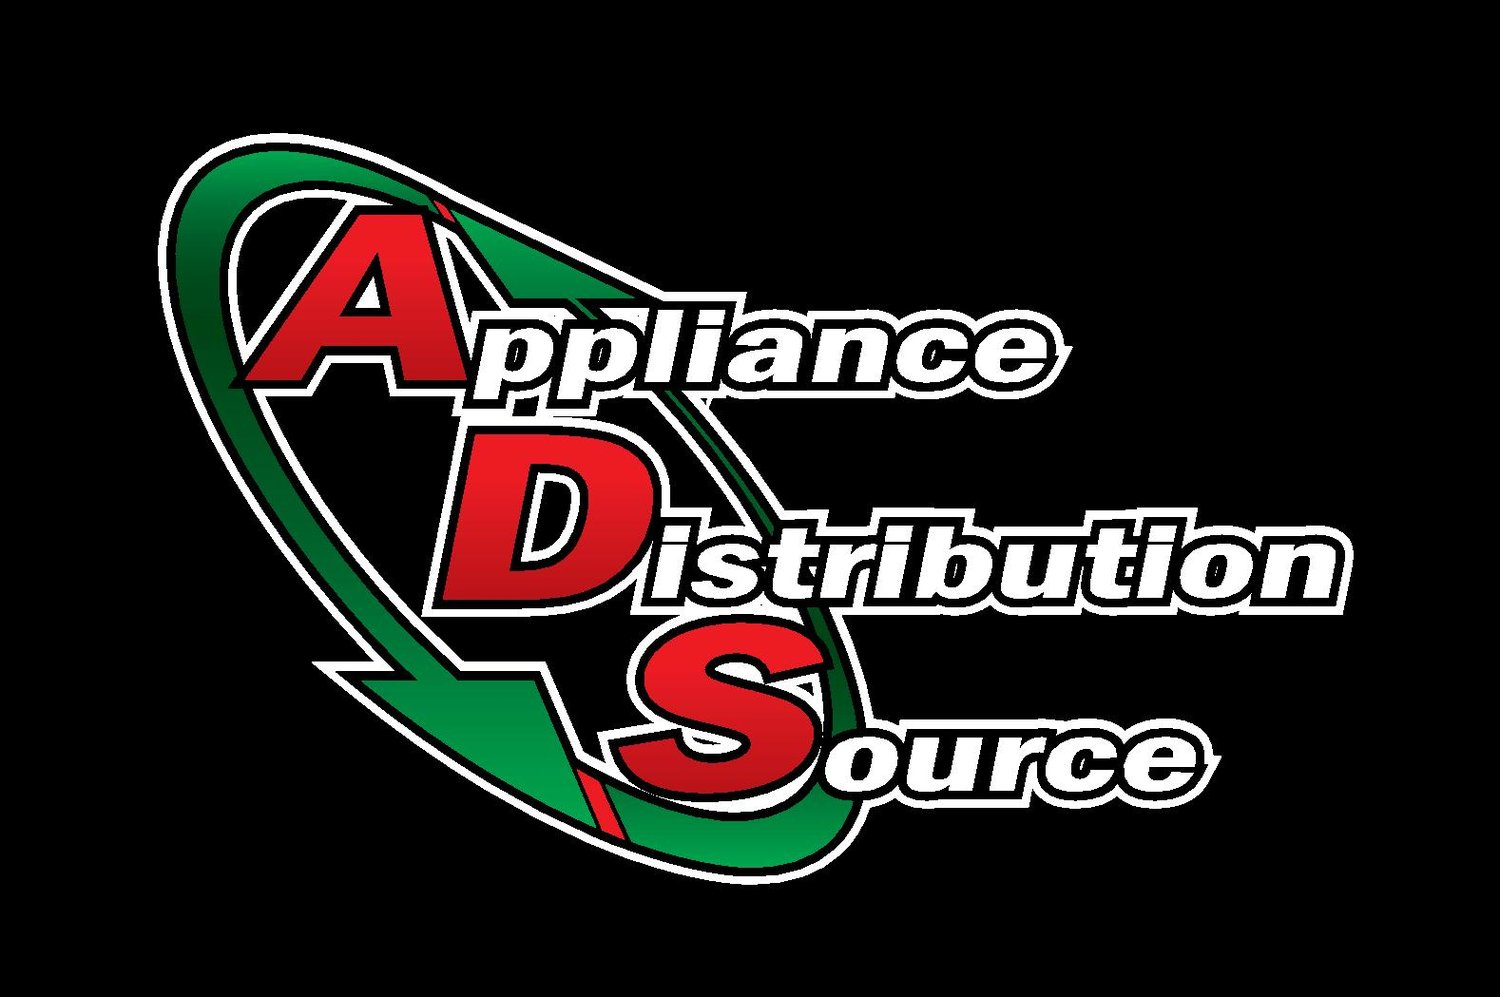 Appliance Distribution Source, LLC